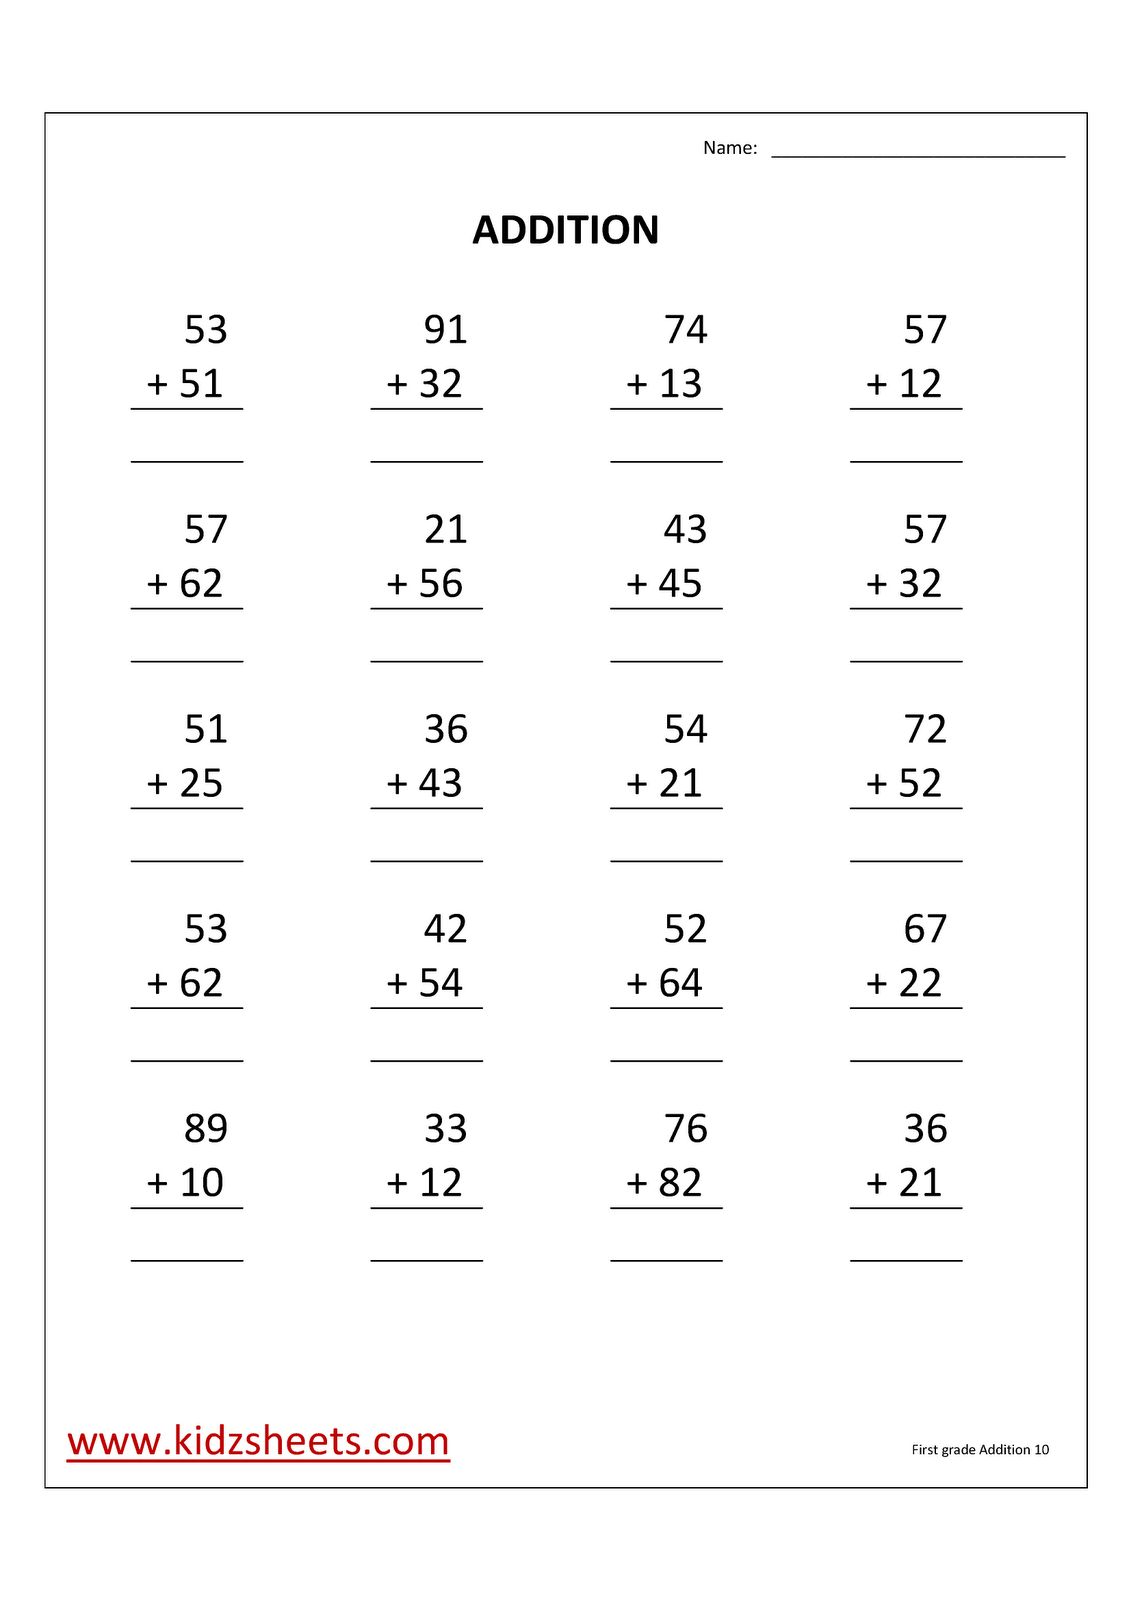 Kidz Worksheets First Grade Addition Worksheet10